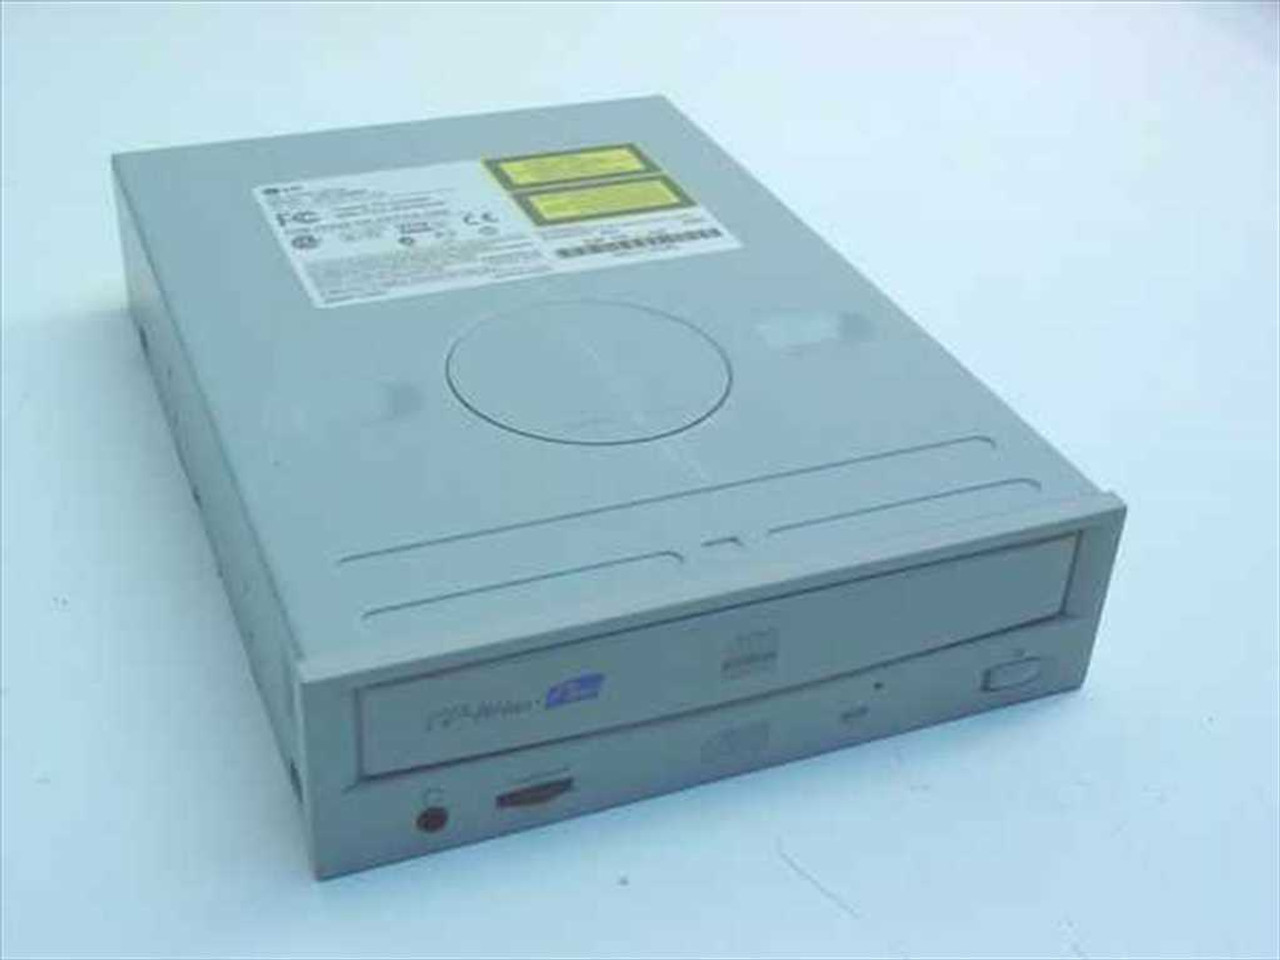 LG ELECTRONICS CED-8083B WINDOWS XP DRIVER